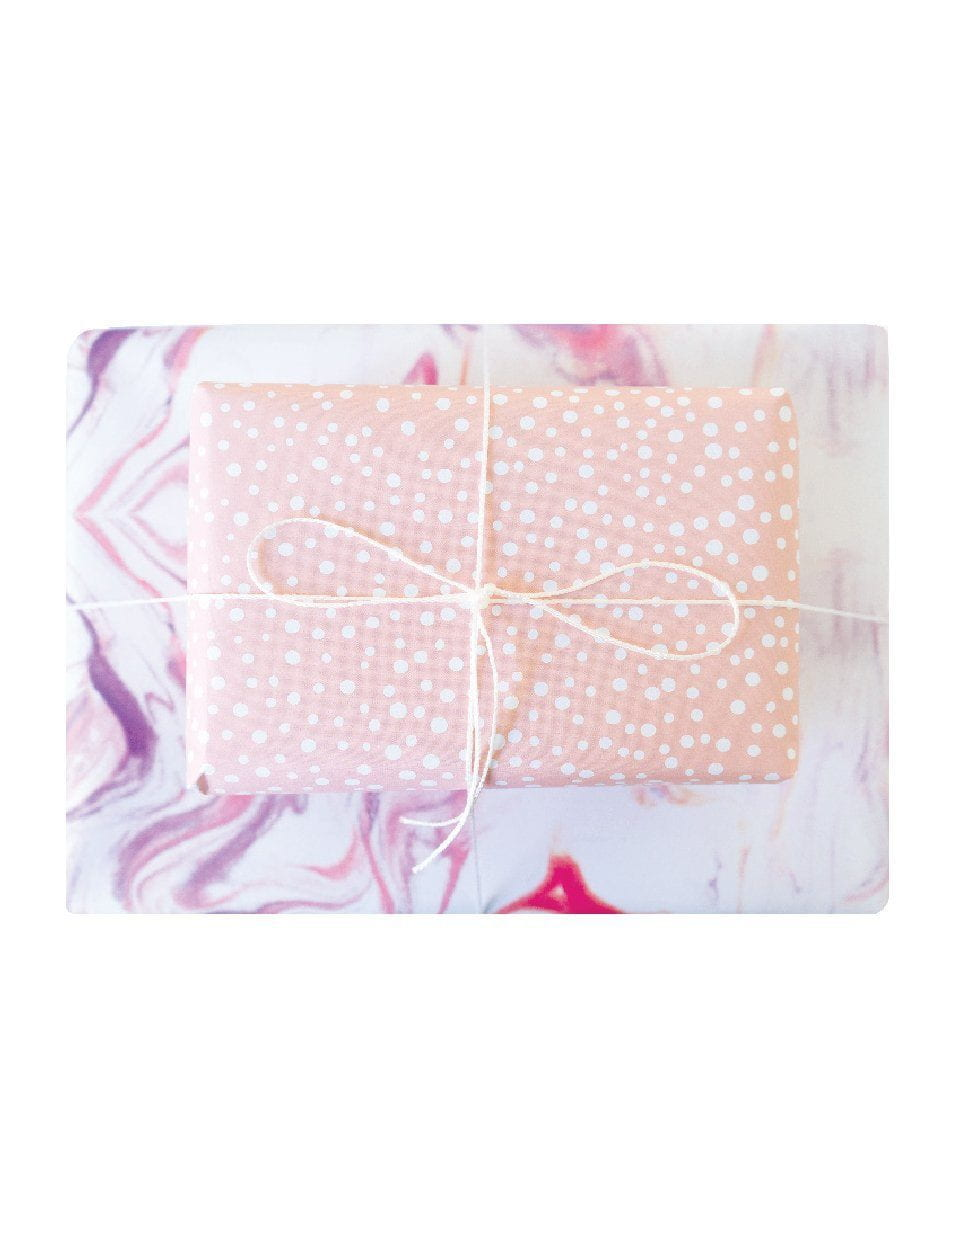 Double Sided Wrapping Paper 3PK: Marbled Polka Dots | Blushing Confetti